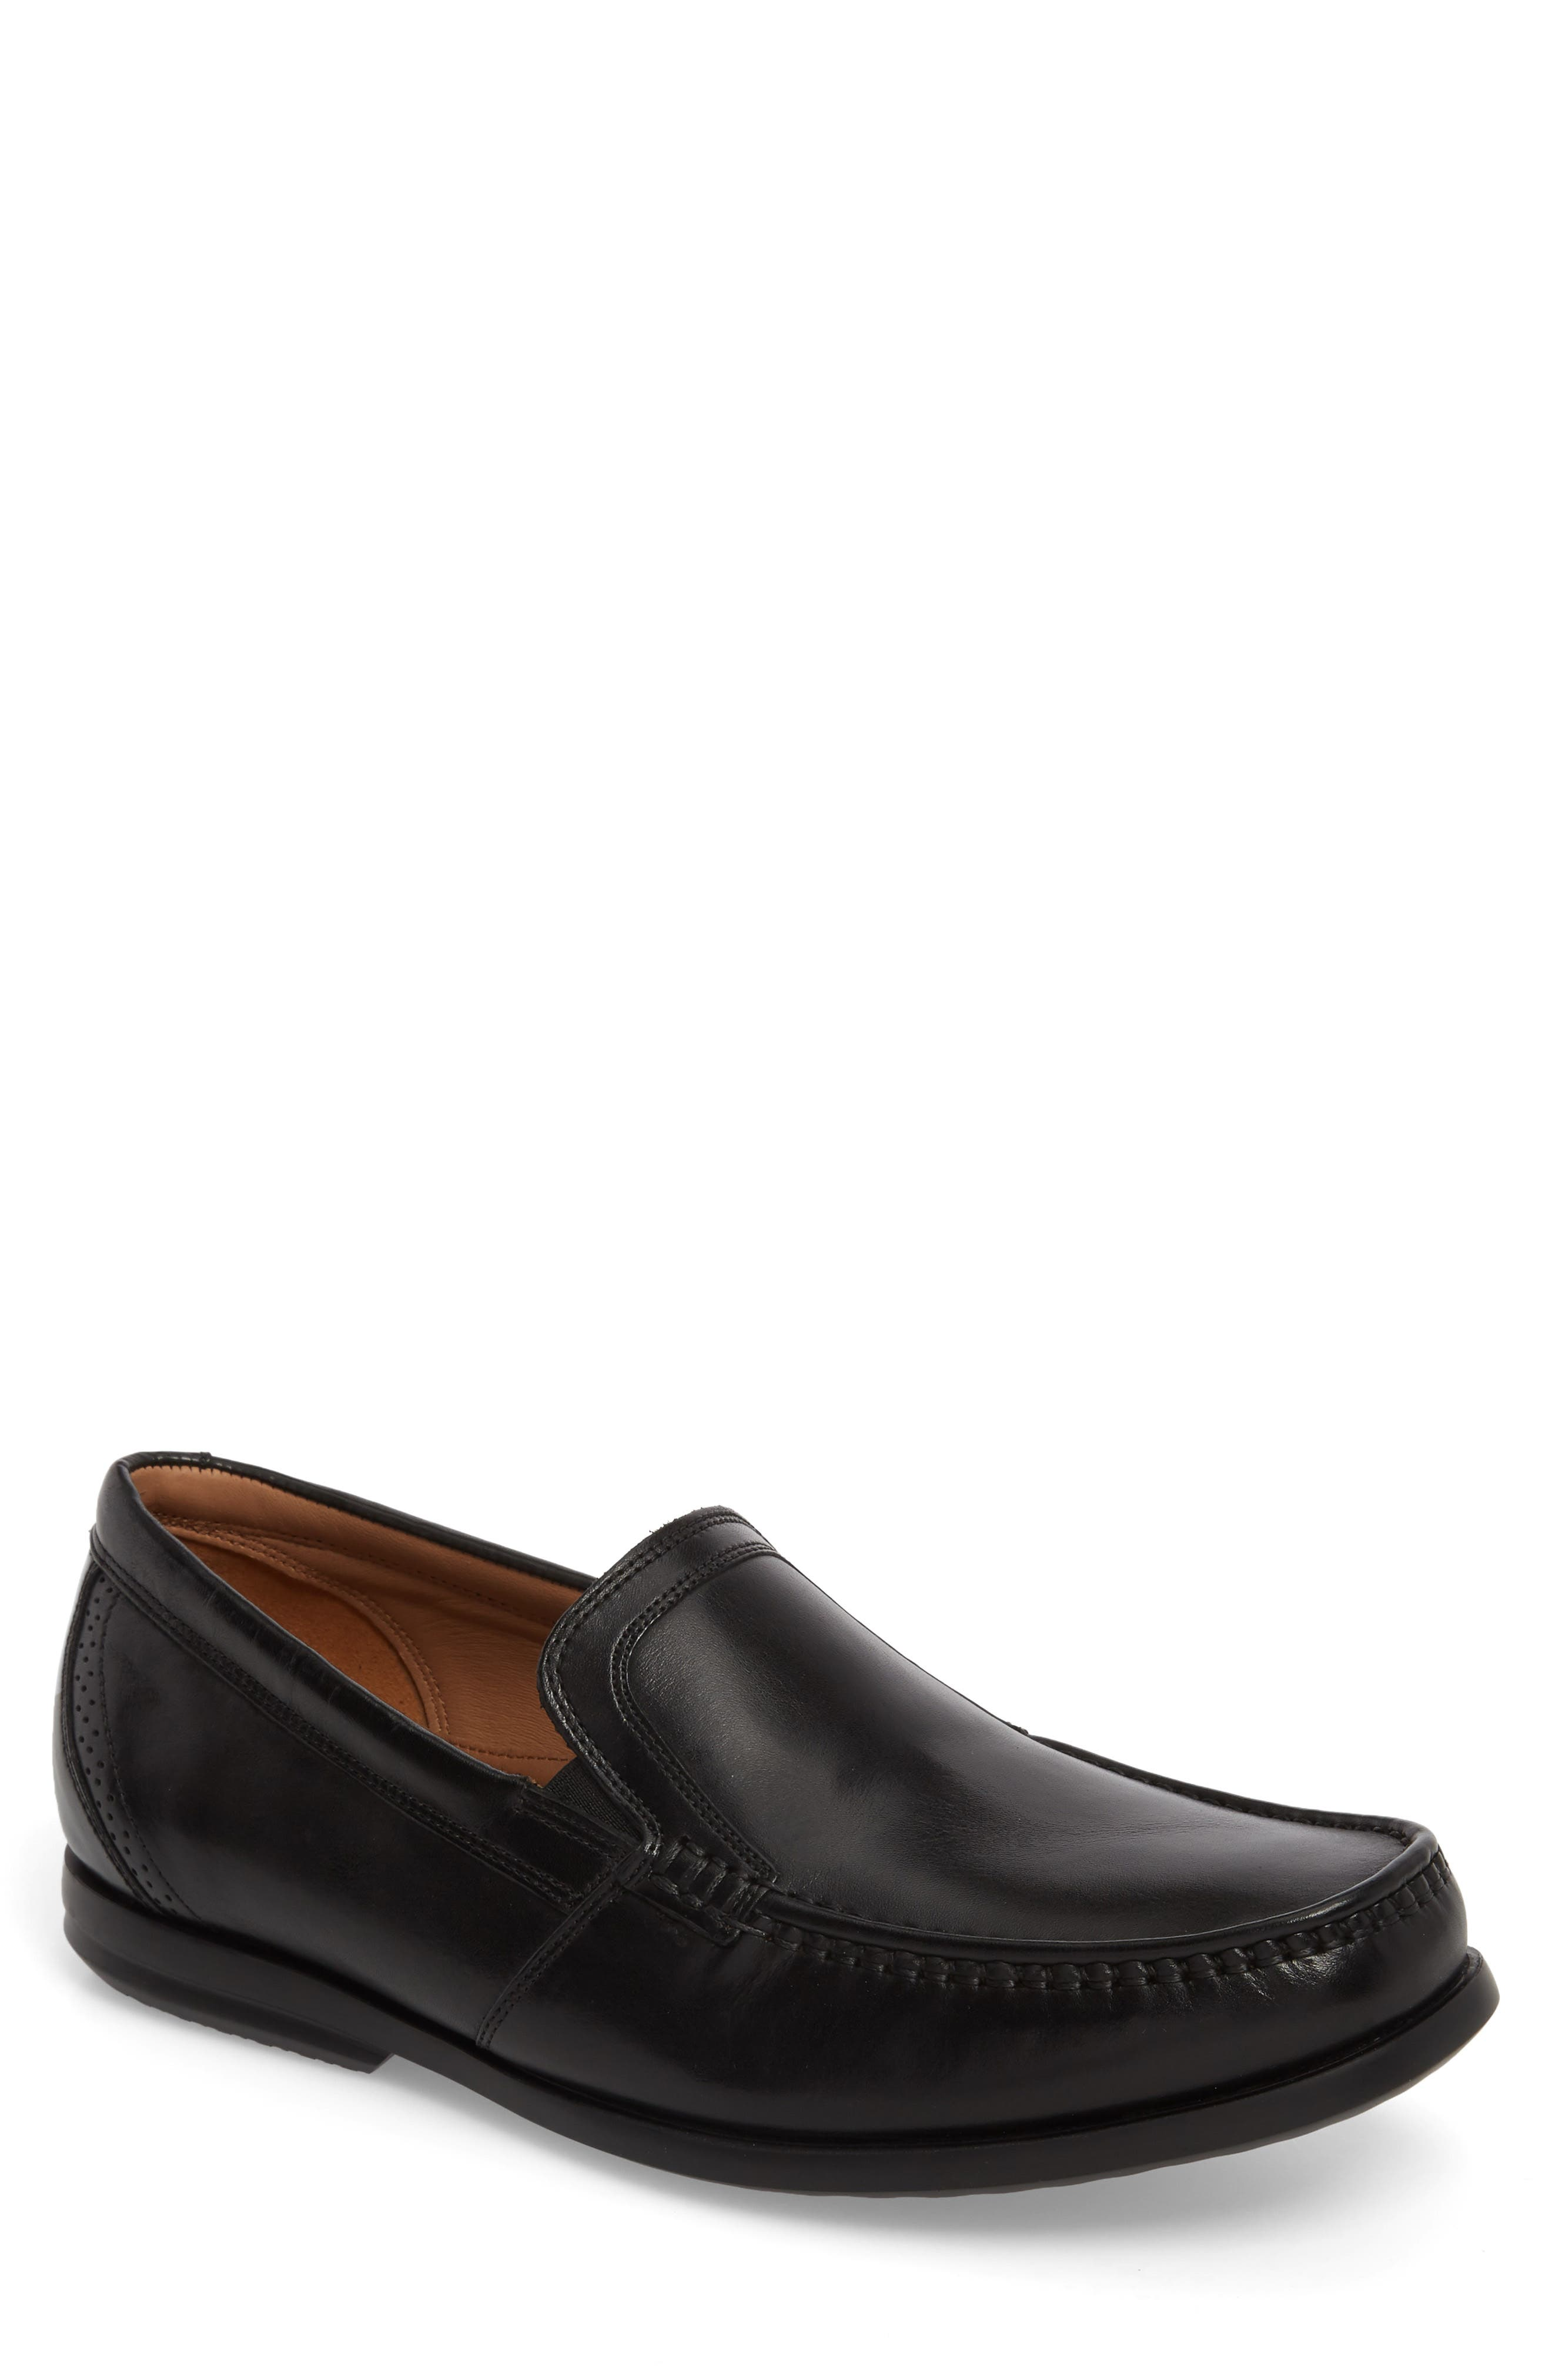 Clarks<sup>®</sup> Ungala Free Venetian Loafer,                         Main,                         color, 003